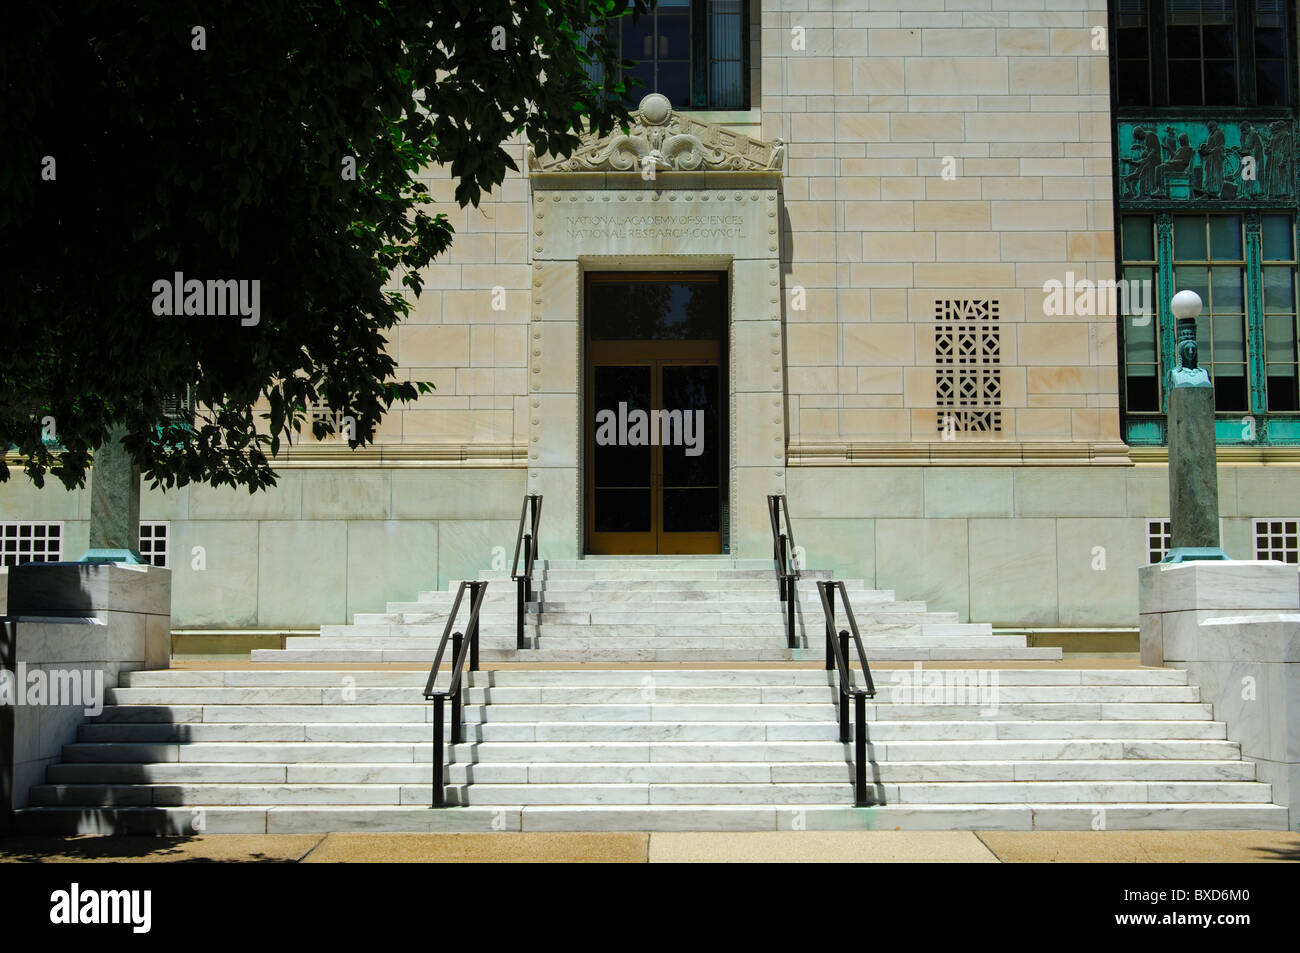 Entrance to the National Academy of Sciences (NAS), historic building in Washington, D.C., USA - Stock Image